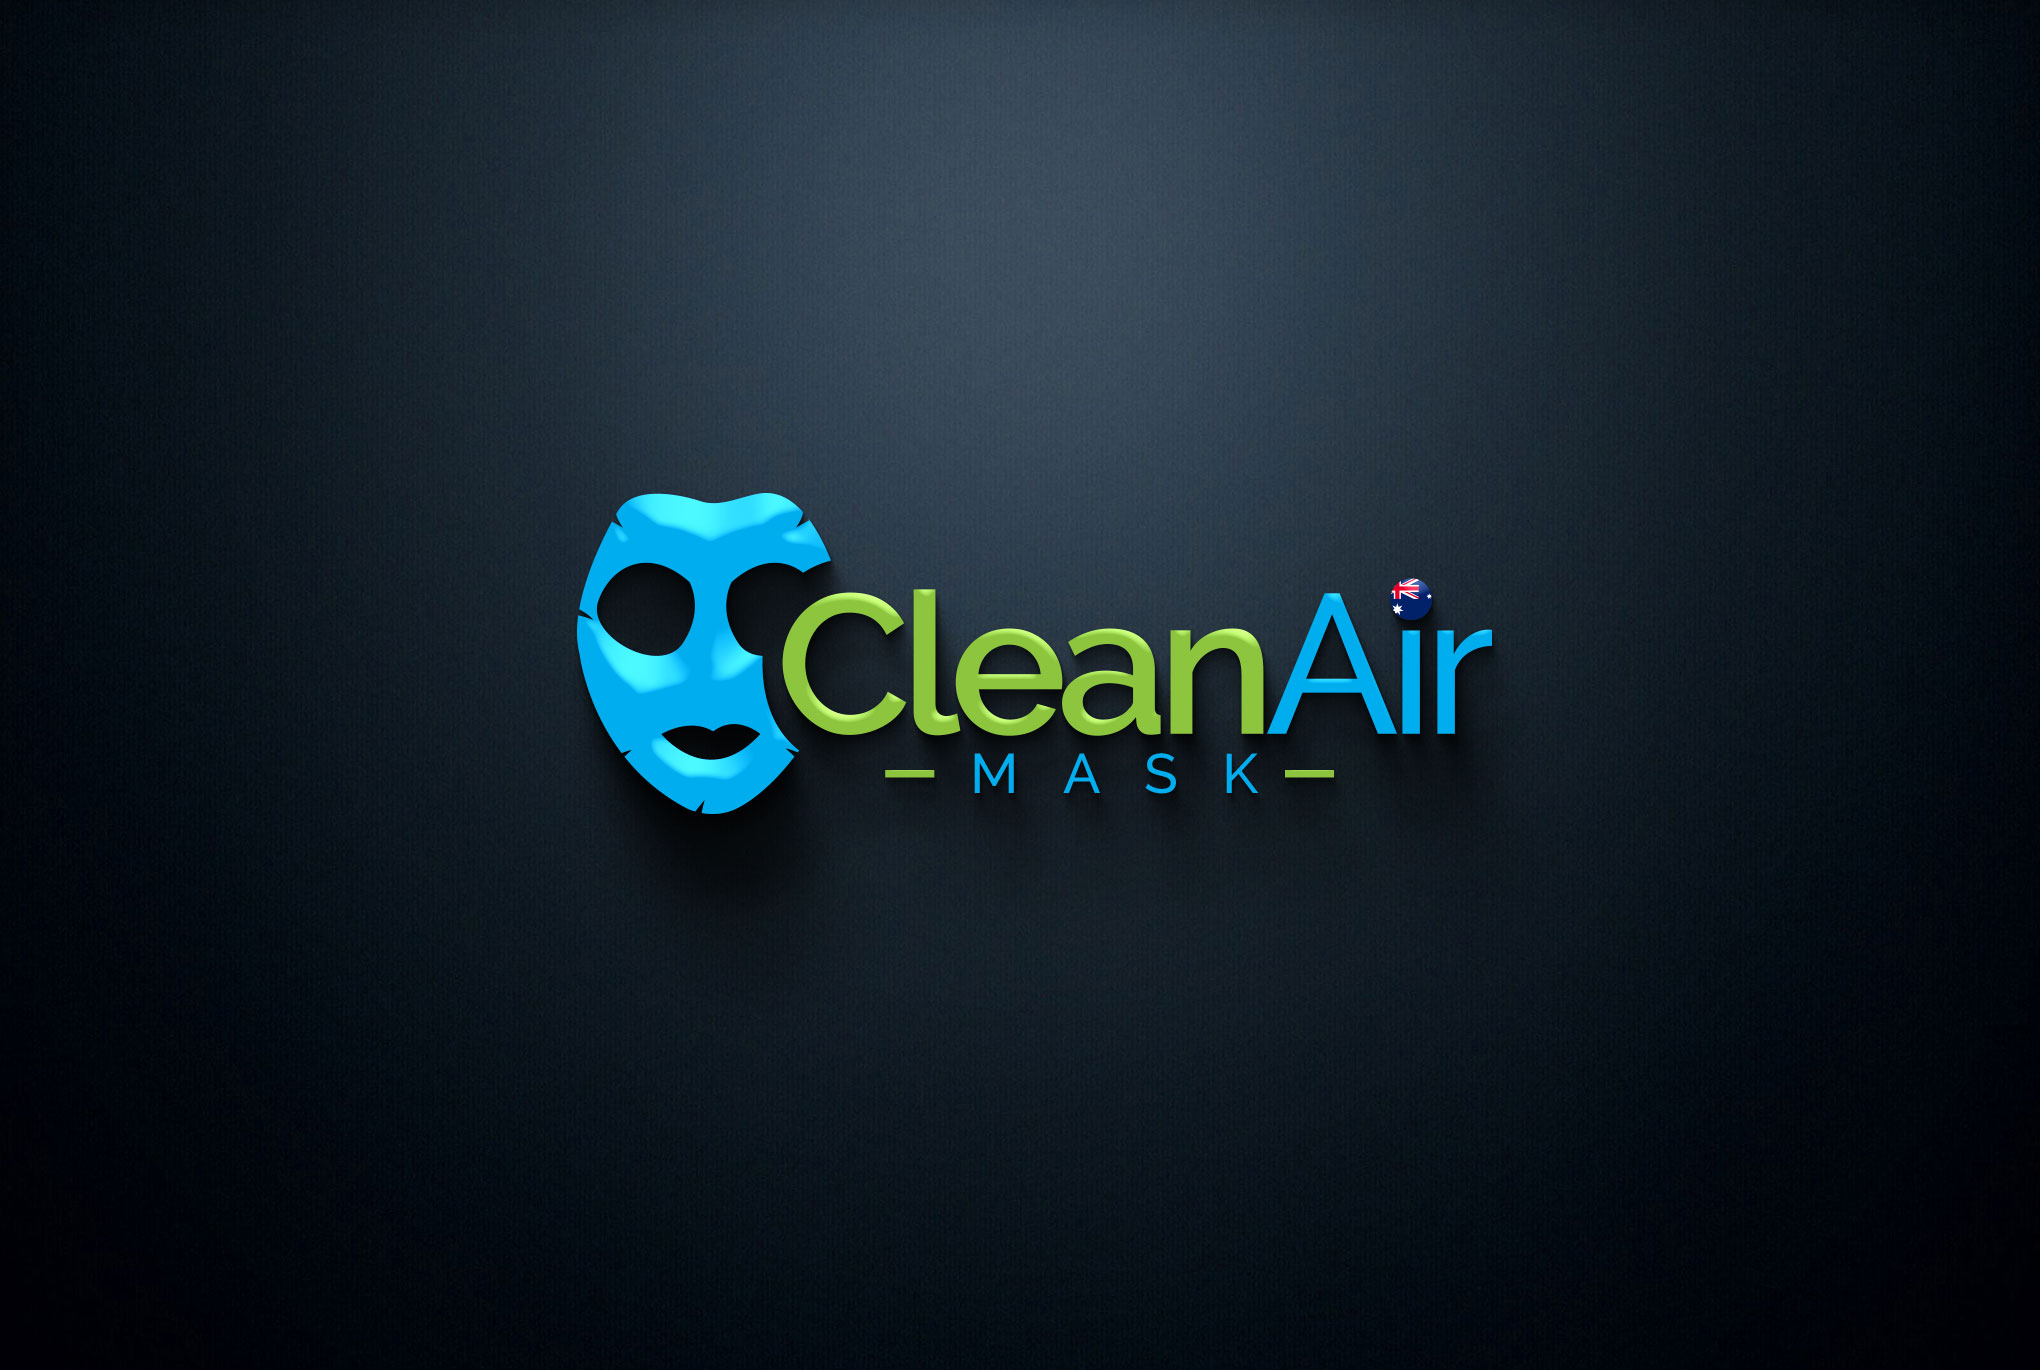 clean air mask black background